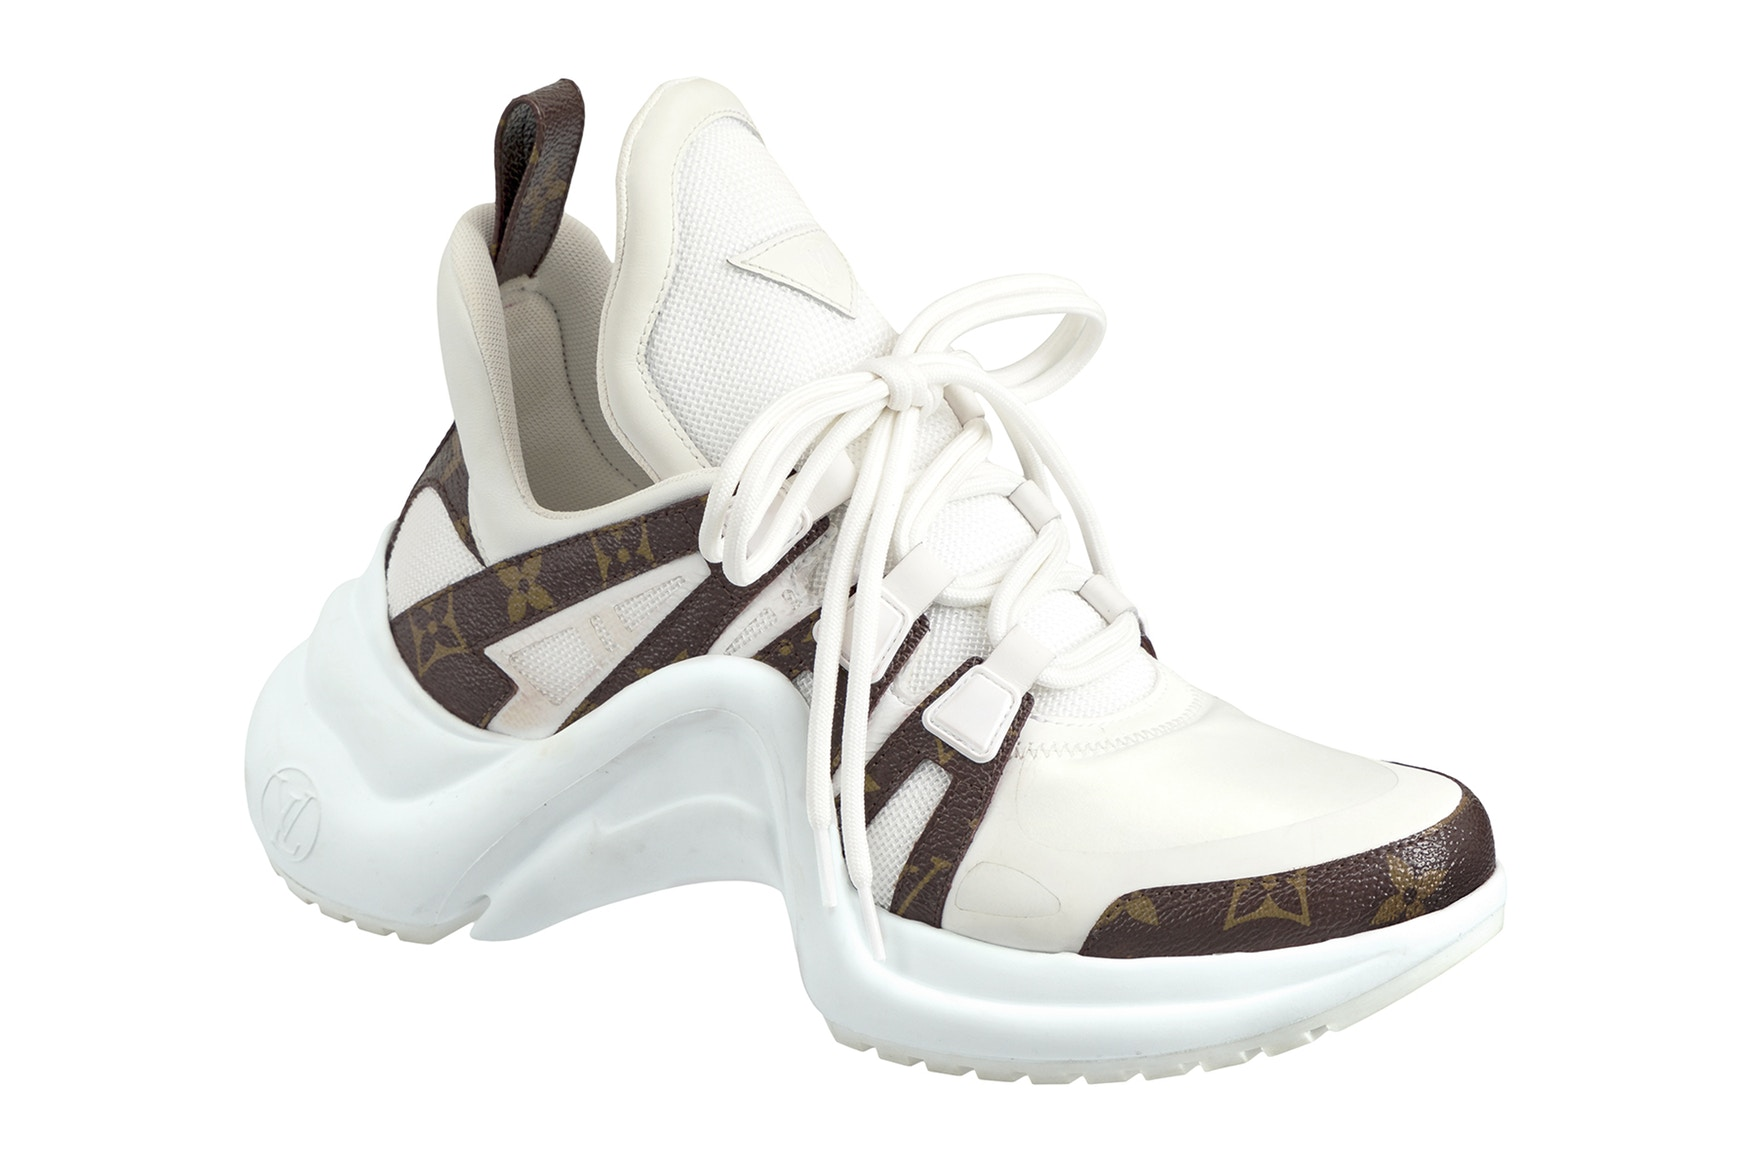 Here's a Better View of Louis Vuitton's Archlight Sneaker